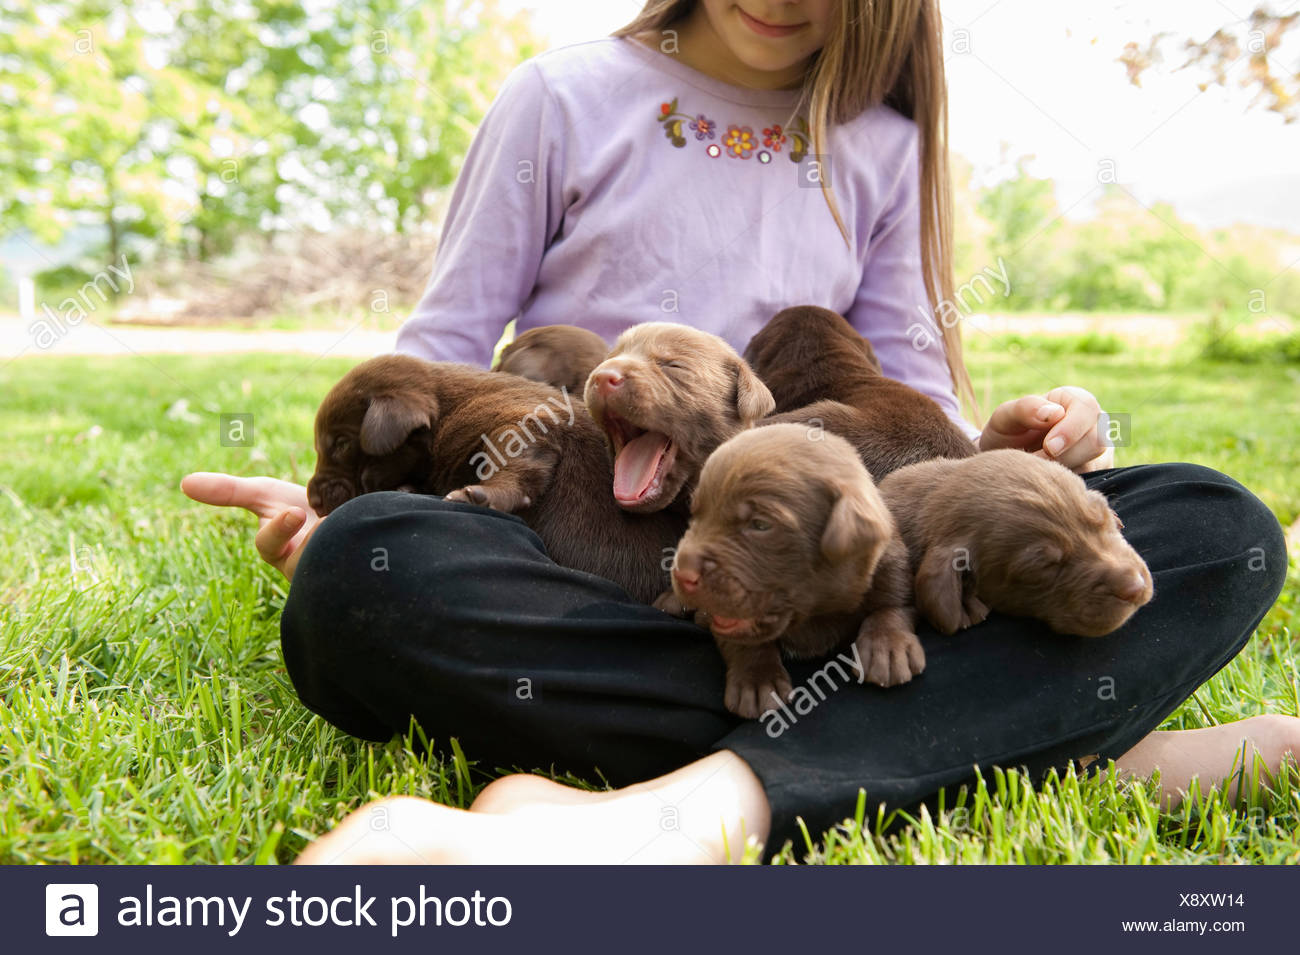 Adolescent holding puppies - Stock Image